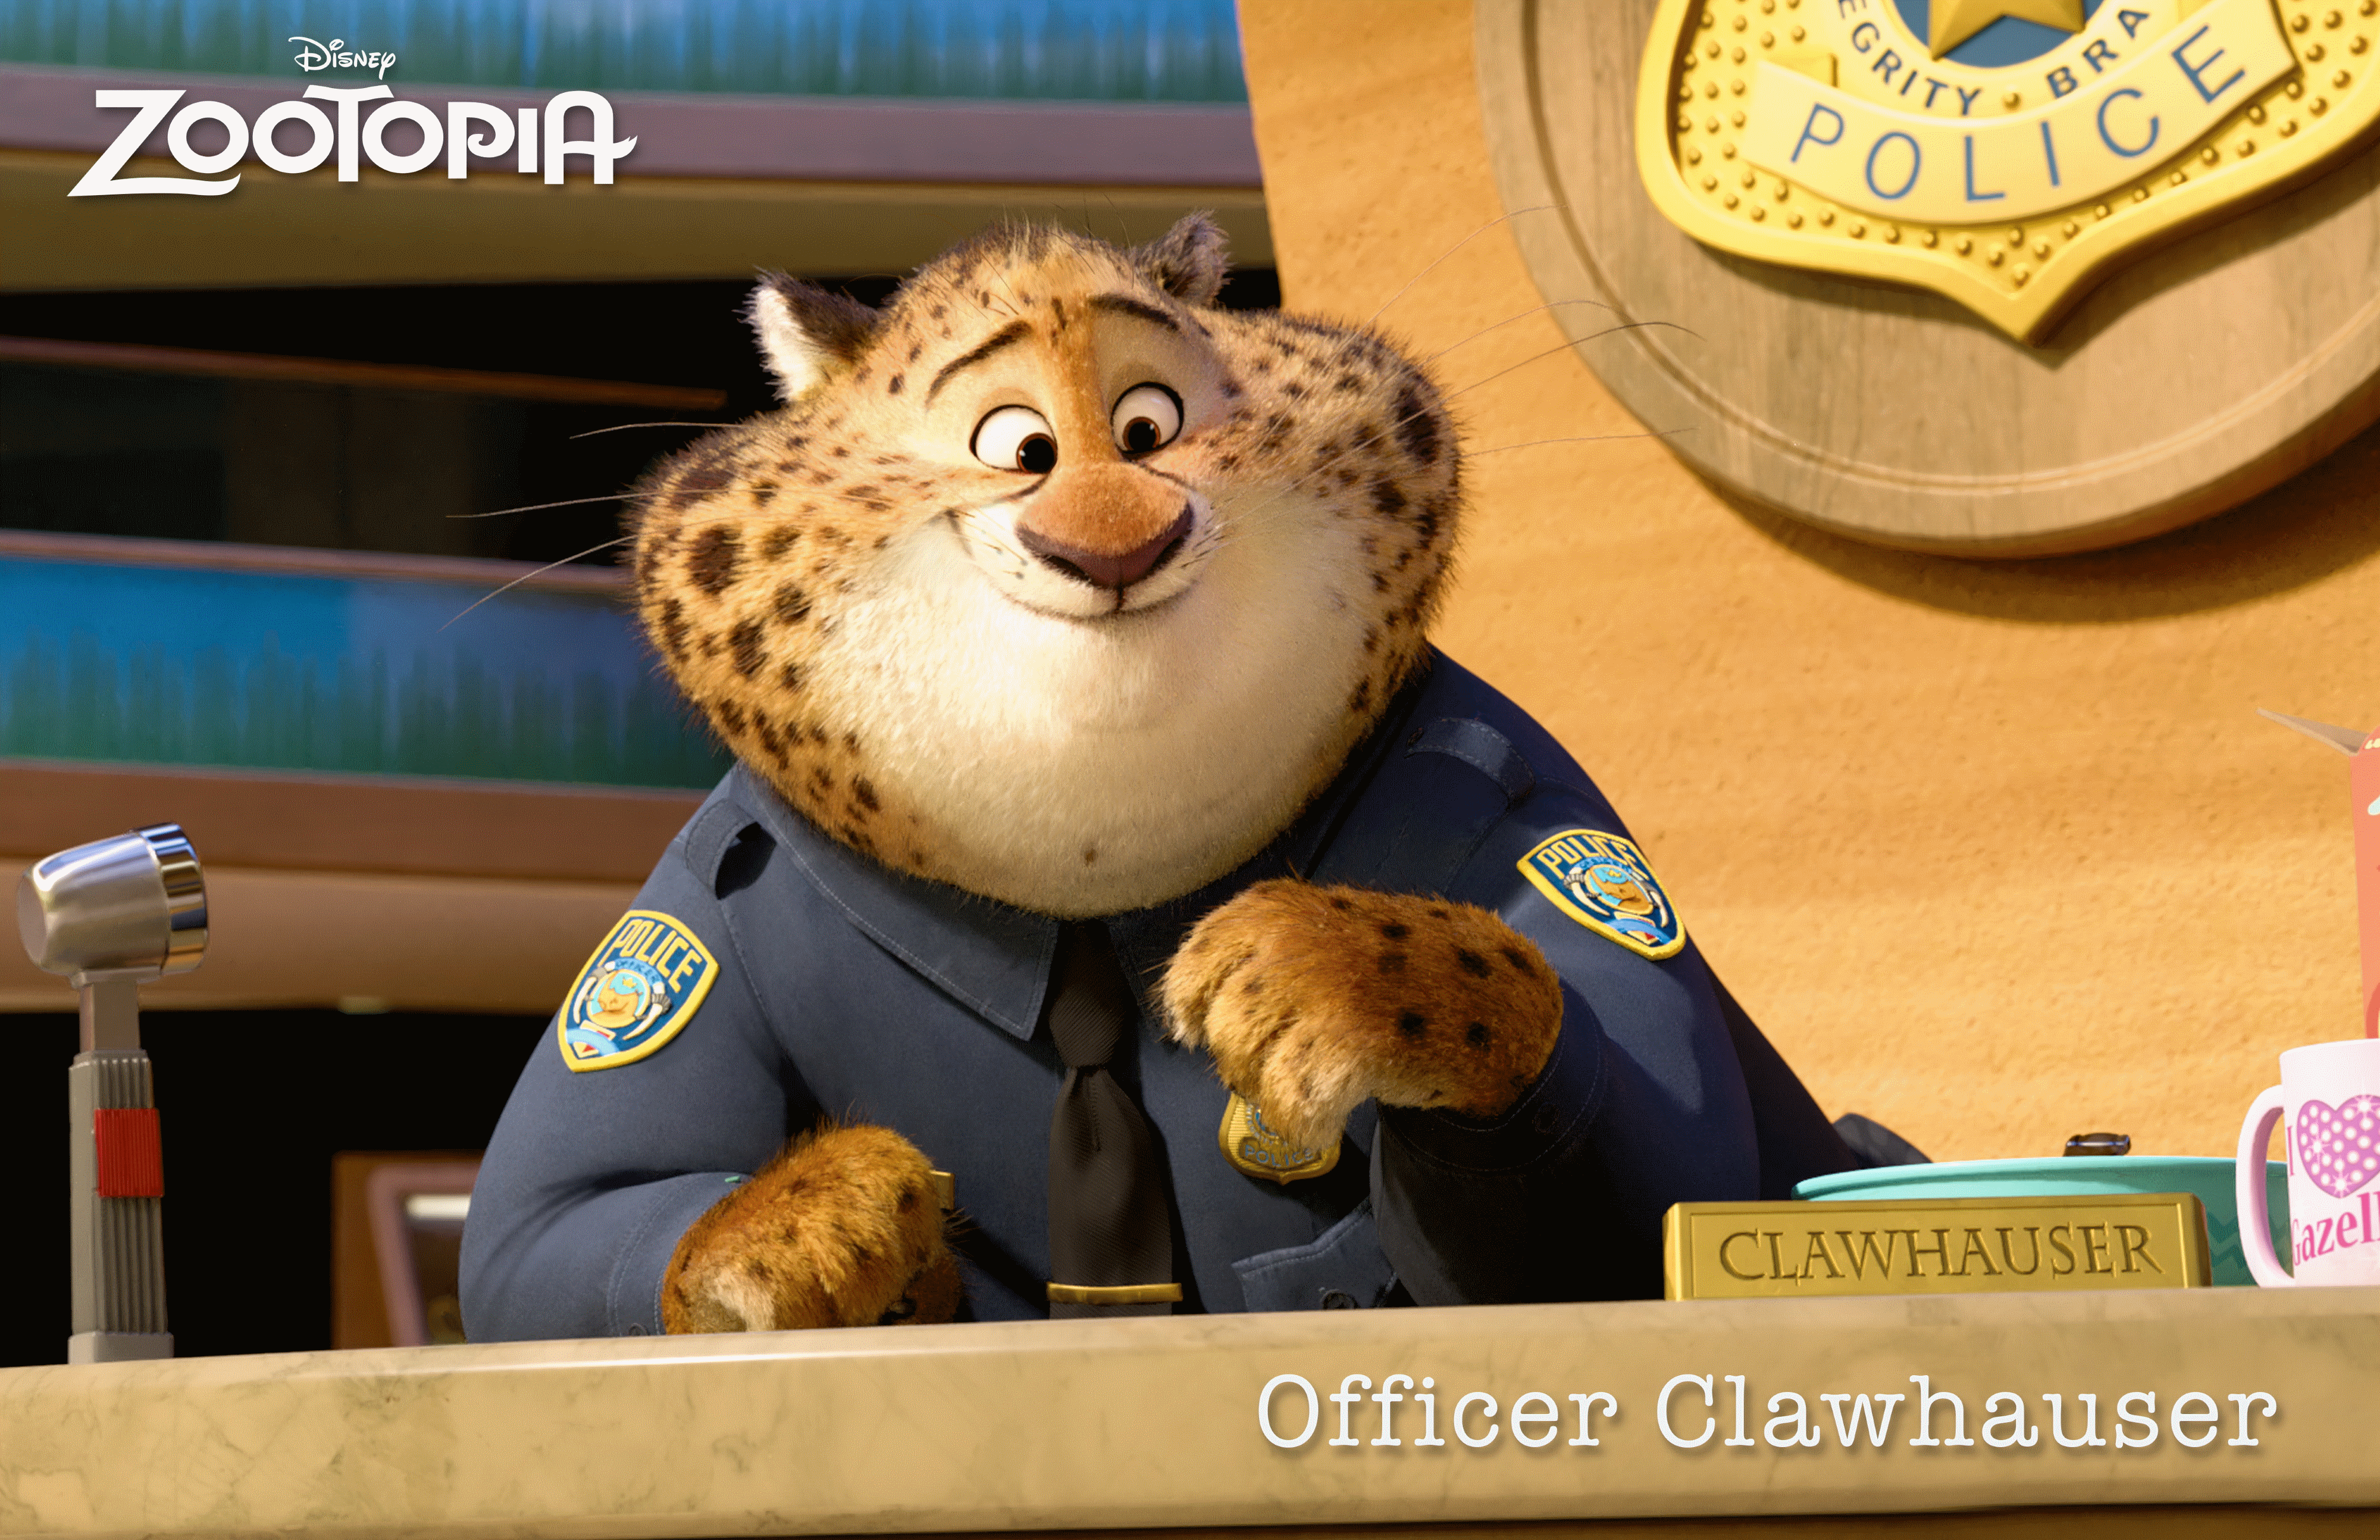 Clawhauser/Gallery